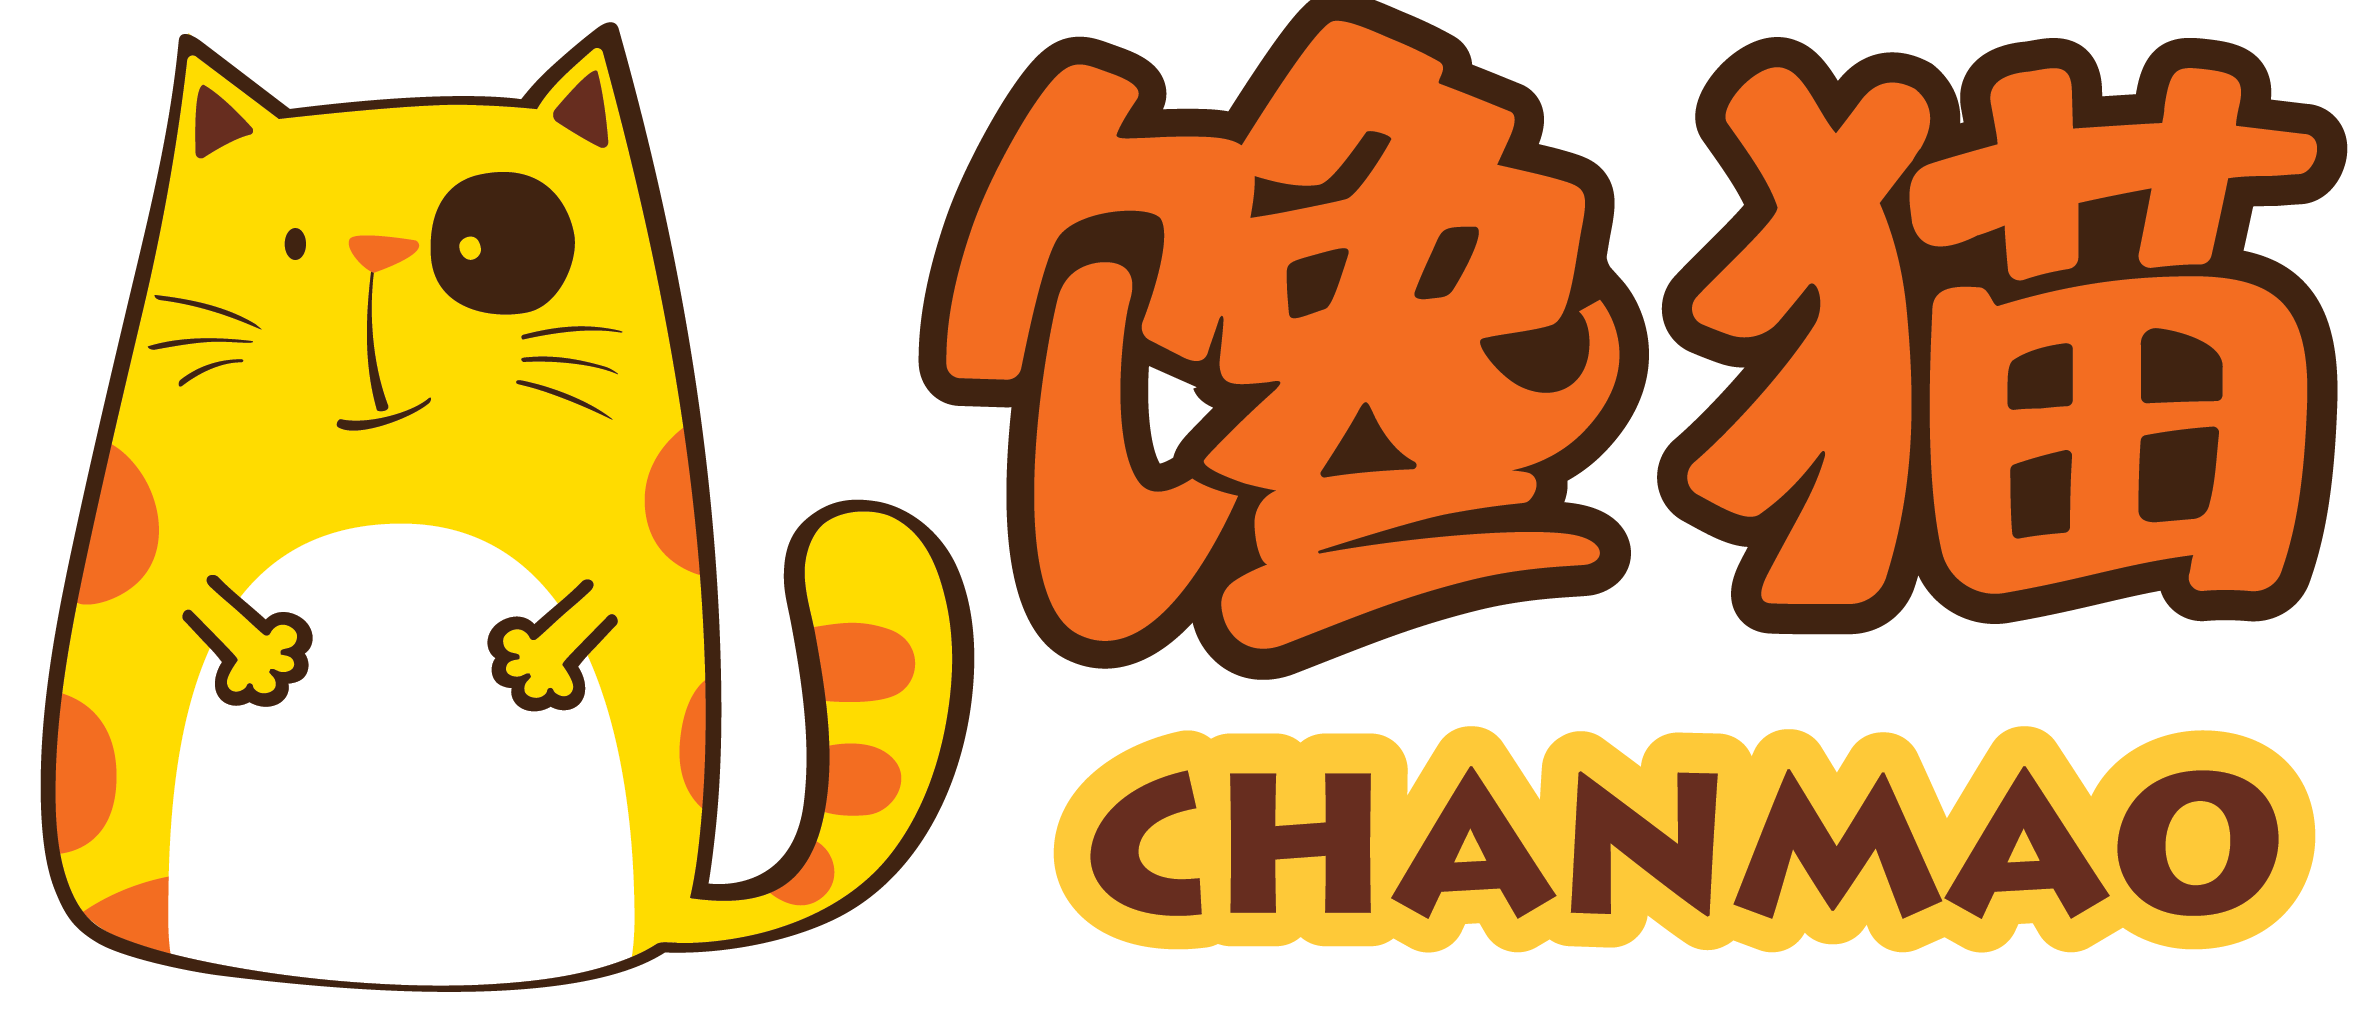 chanmao Logo